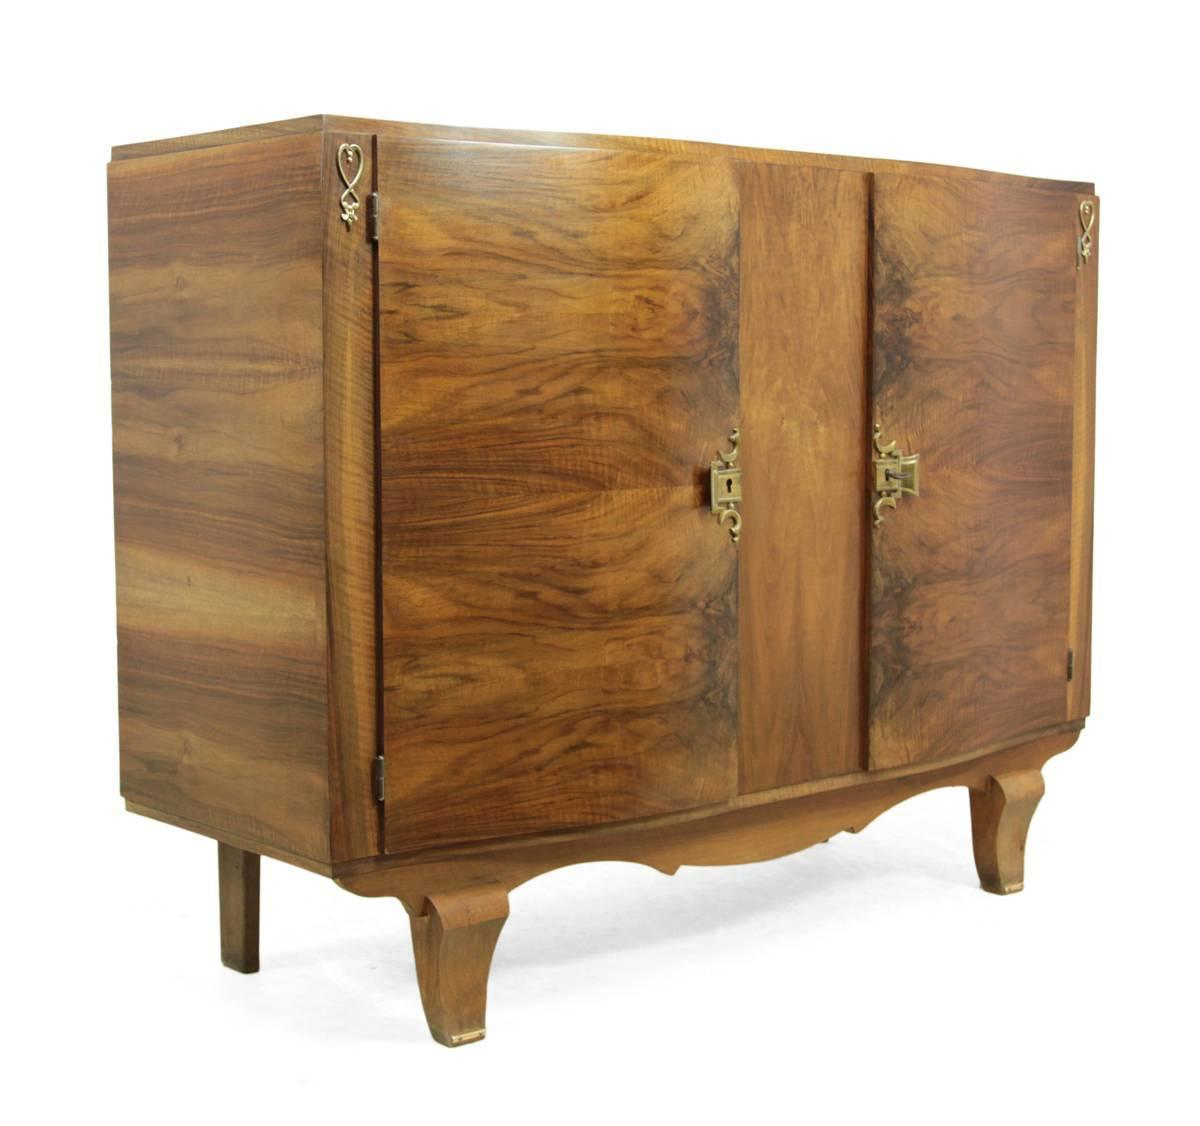 French art deco sideboard circa 1920 for sale at 1stdibs for Art deco era dates